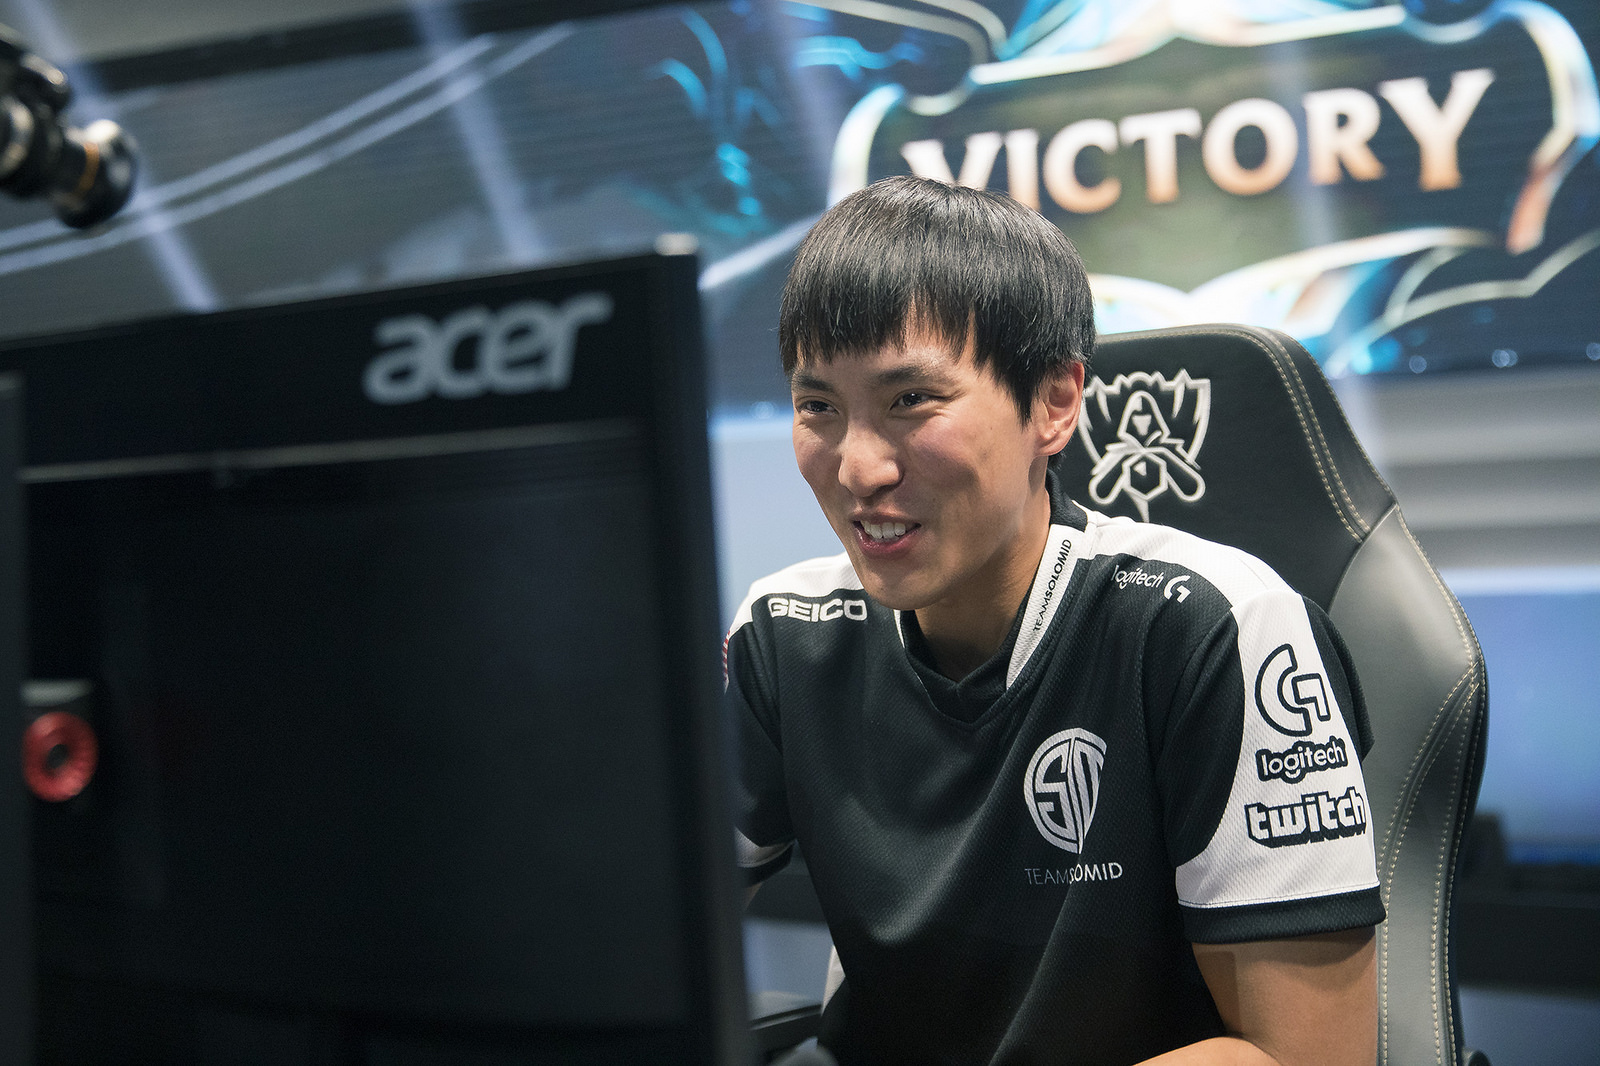 Doublelift savours victory over Splyce, but TSM fell short in crunch games against RNG.